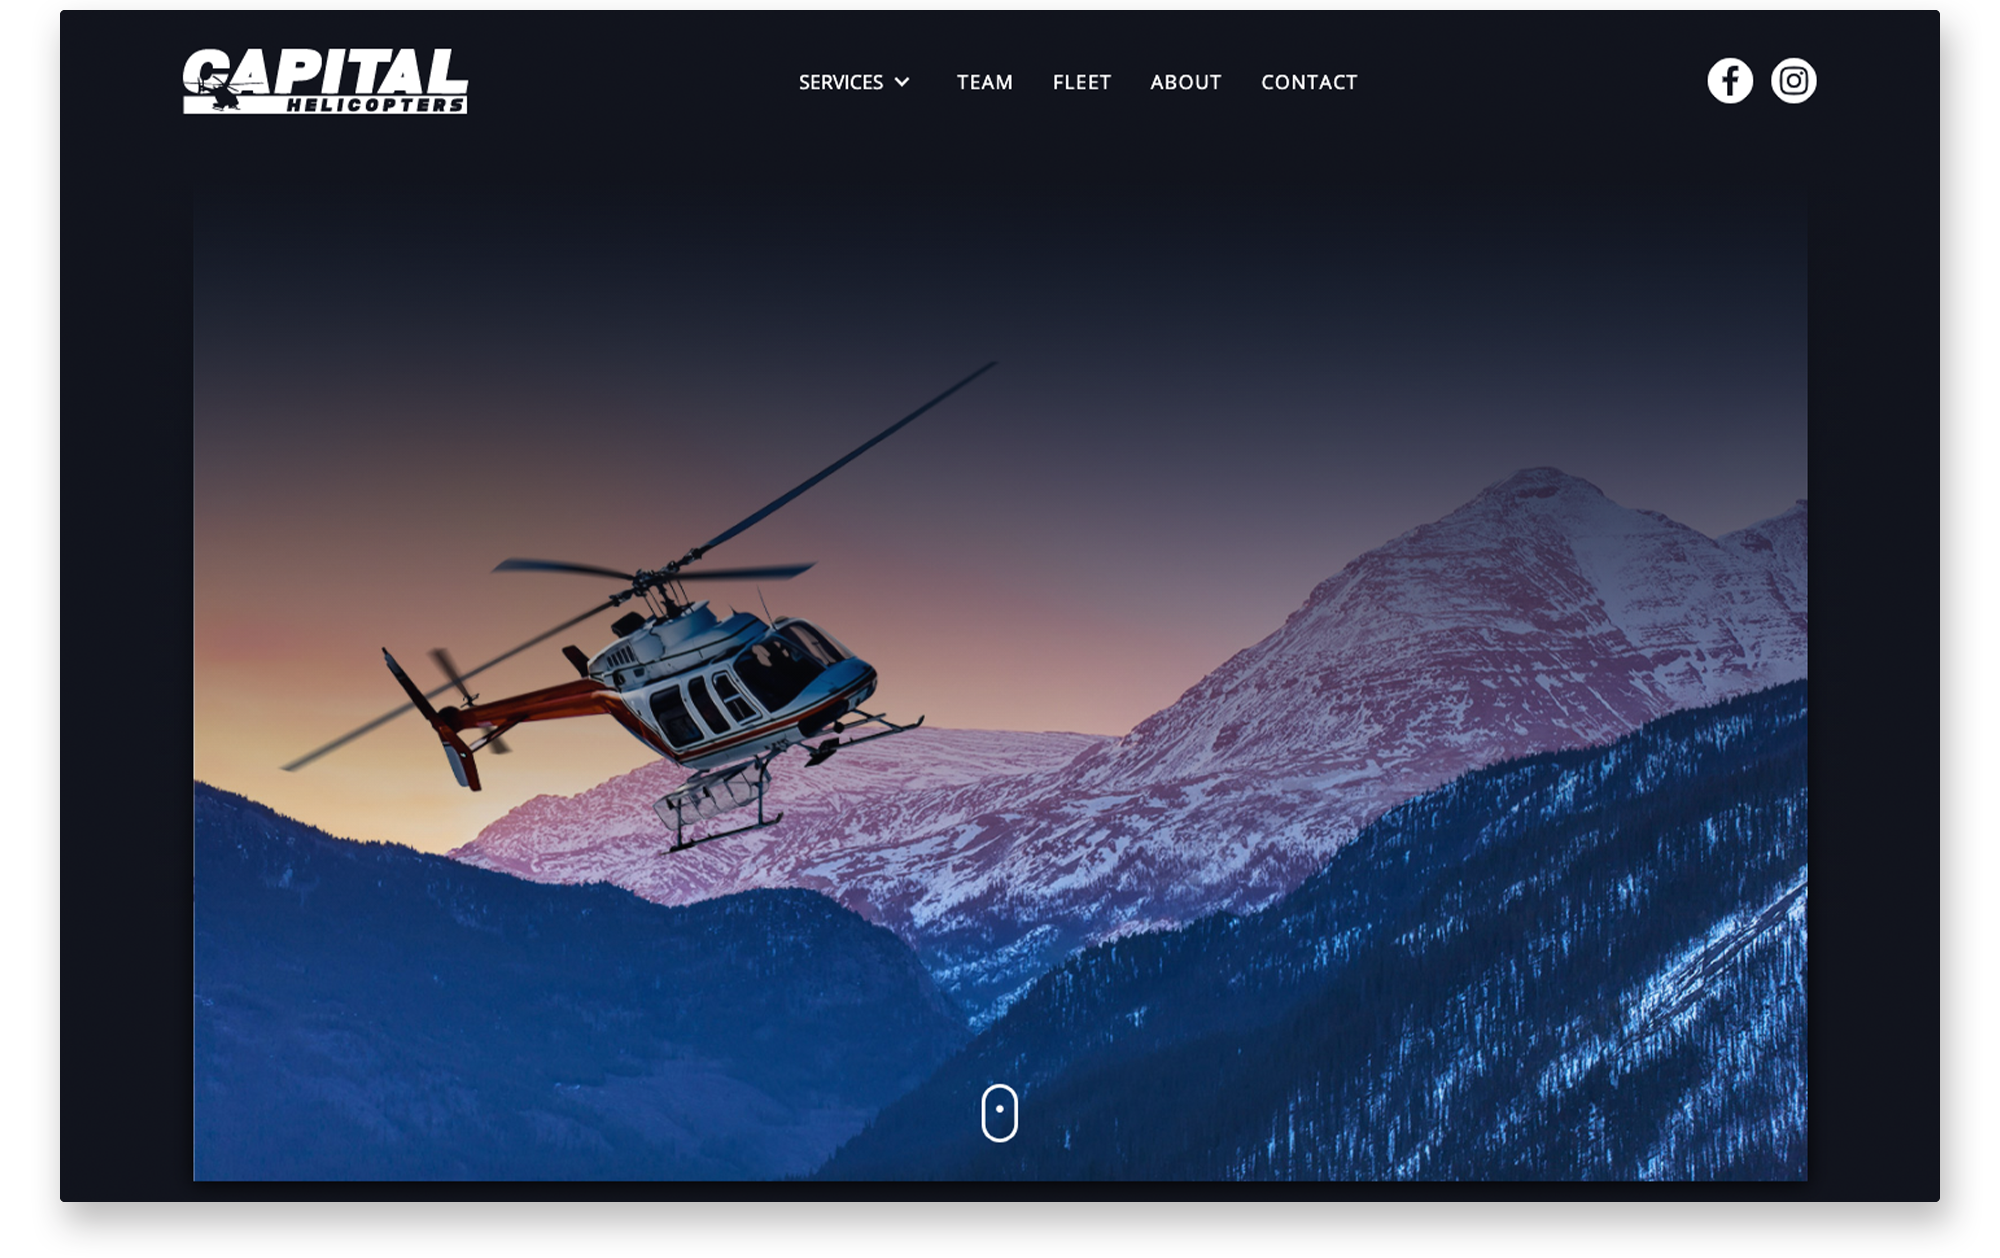 Example of desktop website landing page for Capital Helicopters.